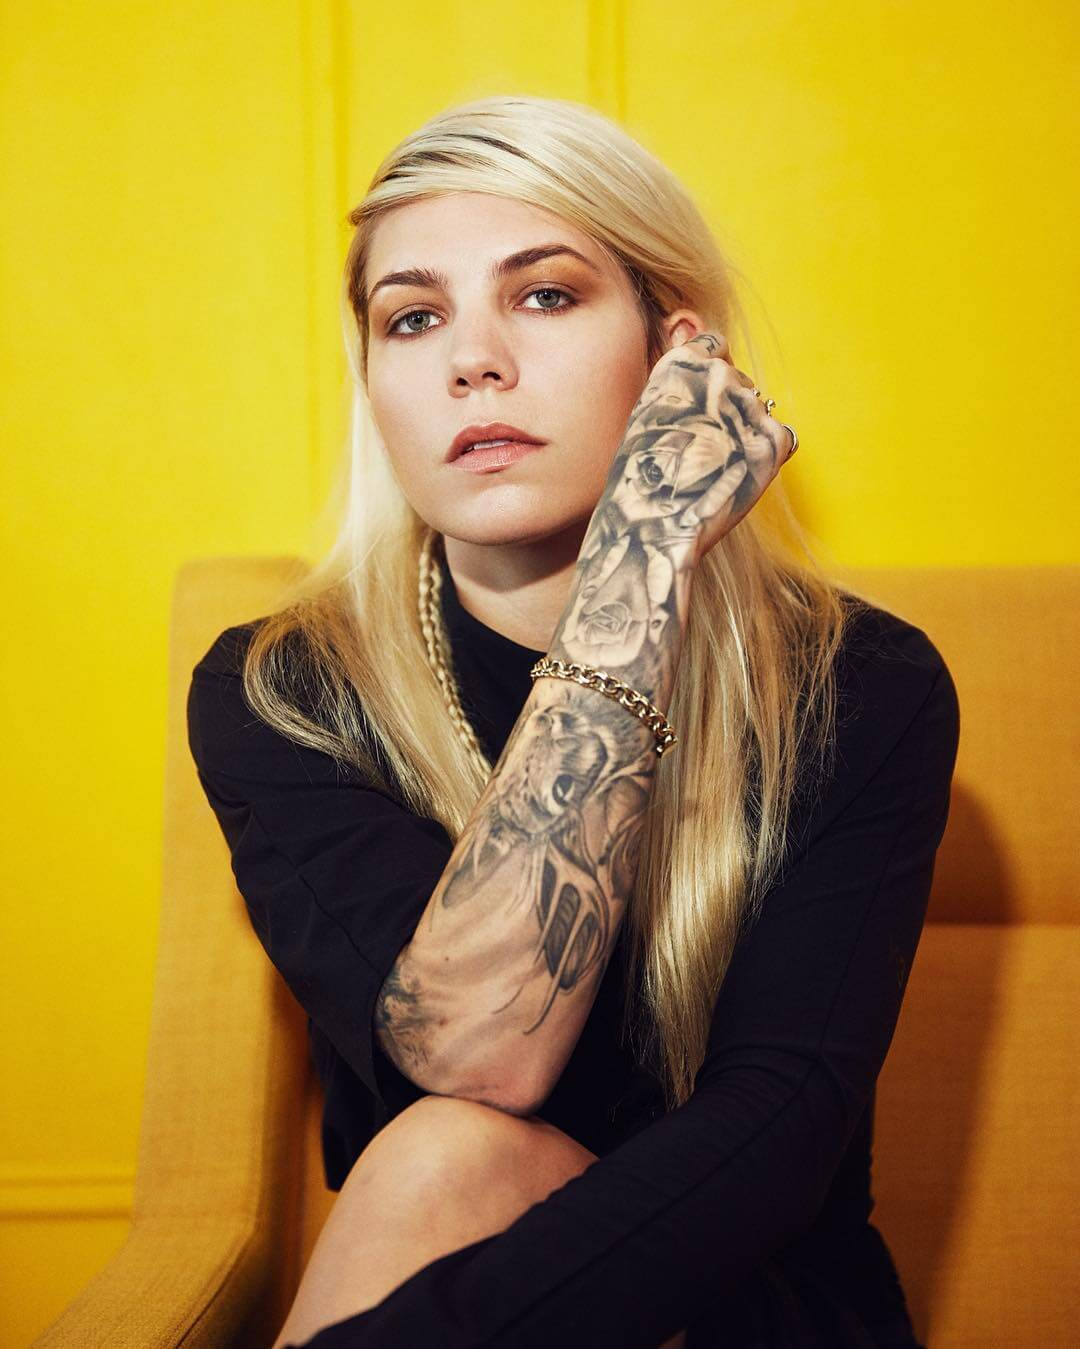 skylar grey beautiful photo